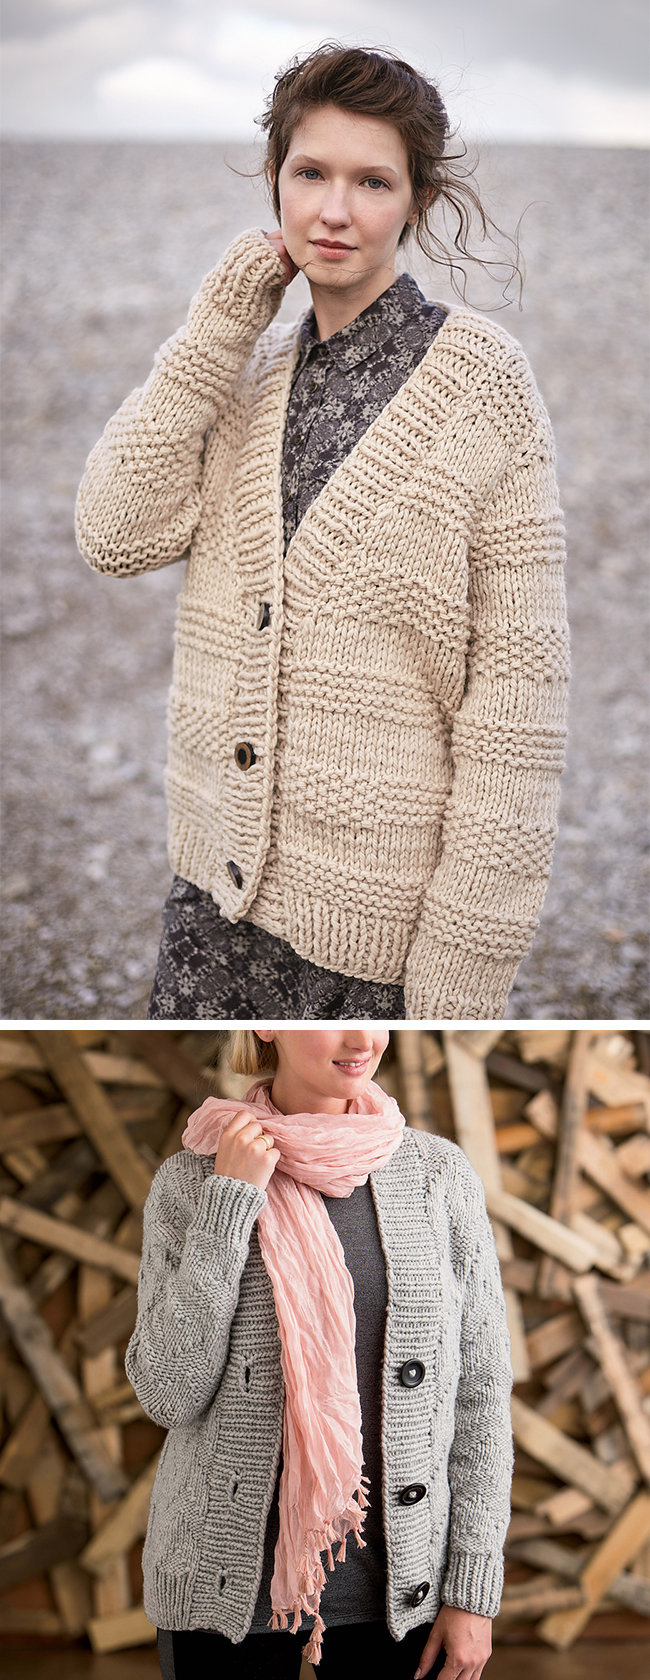 New Favorites: Bulky cardigans